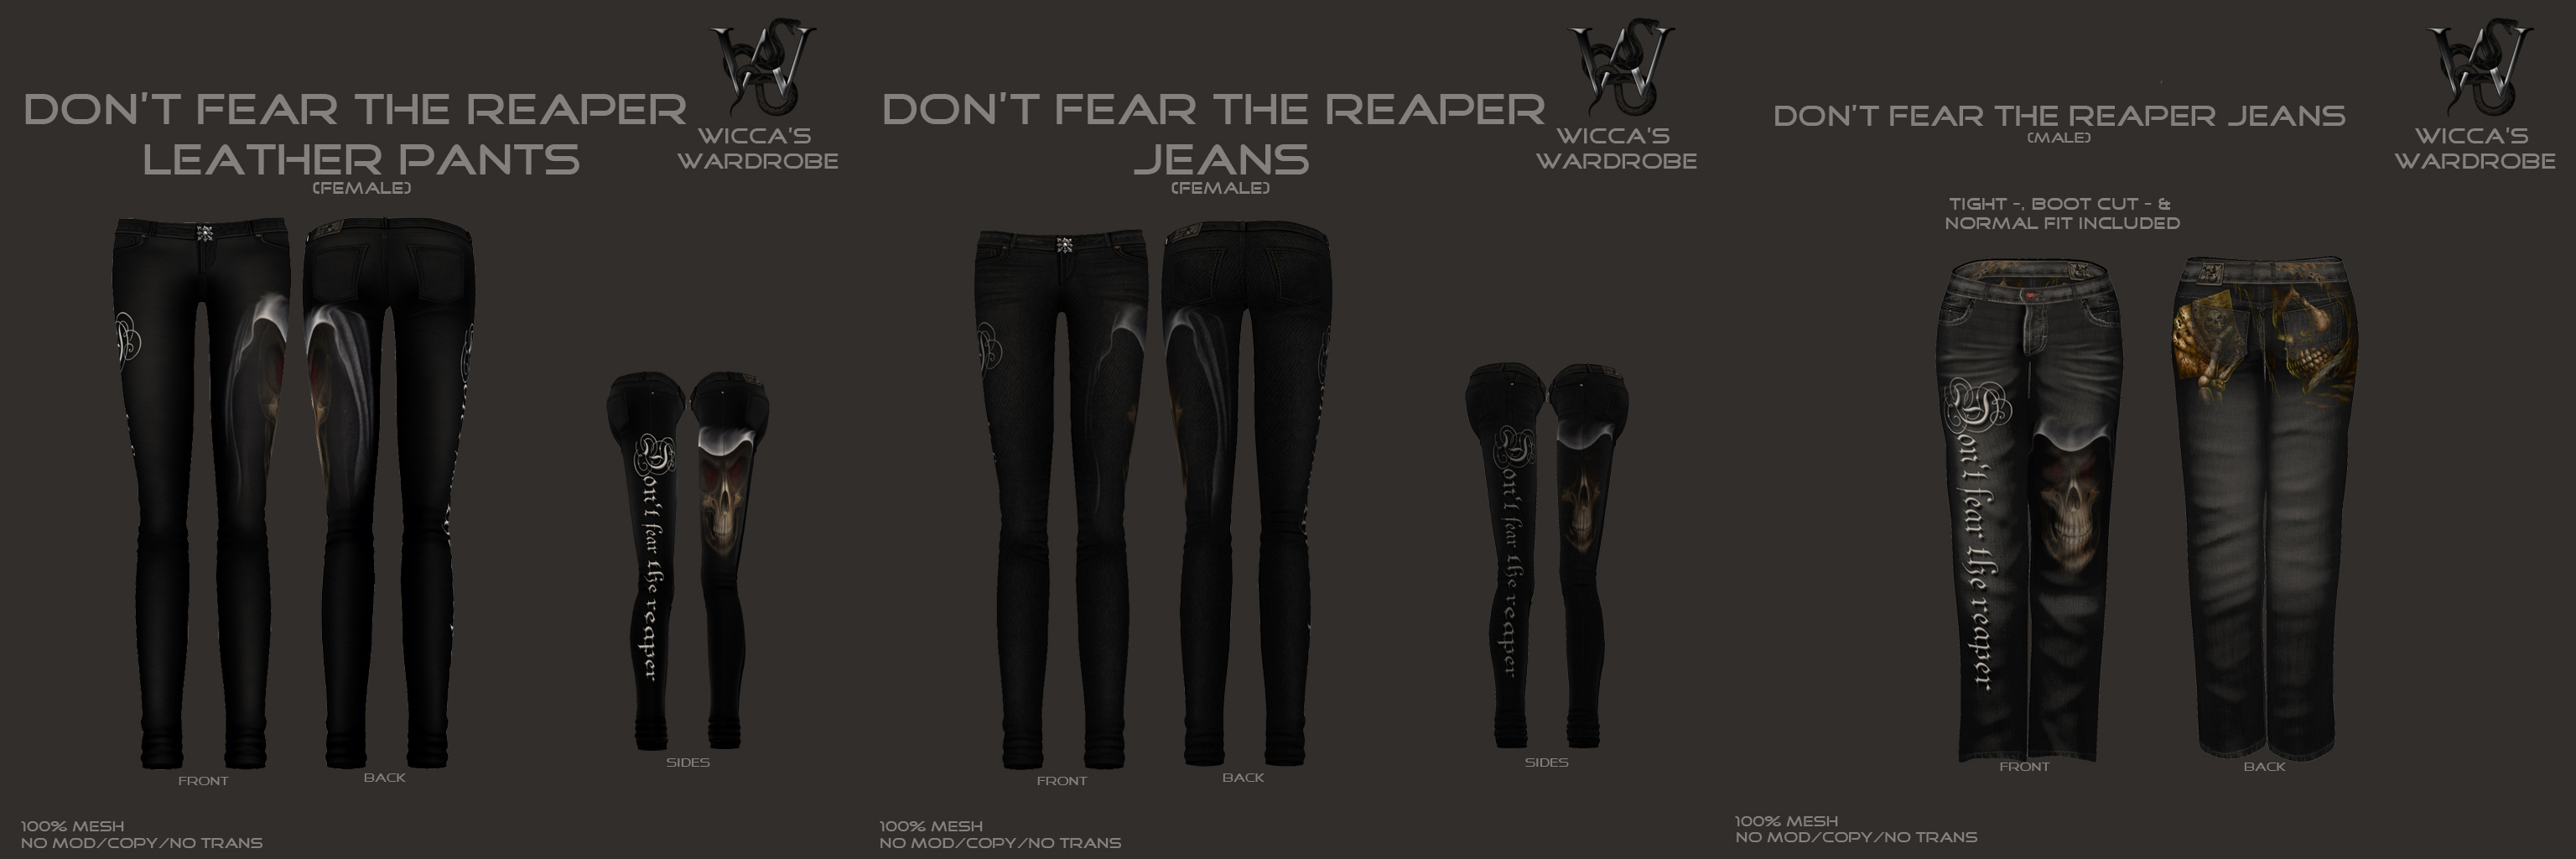 Don't Fear Jeans